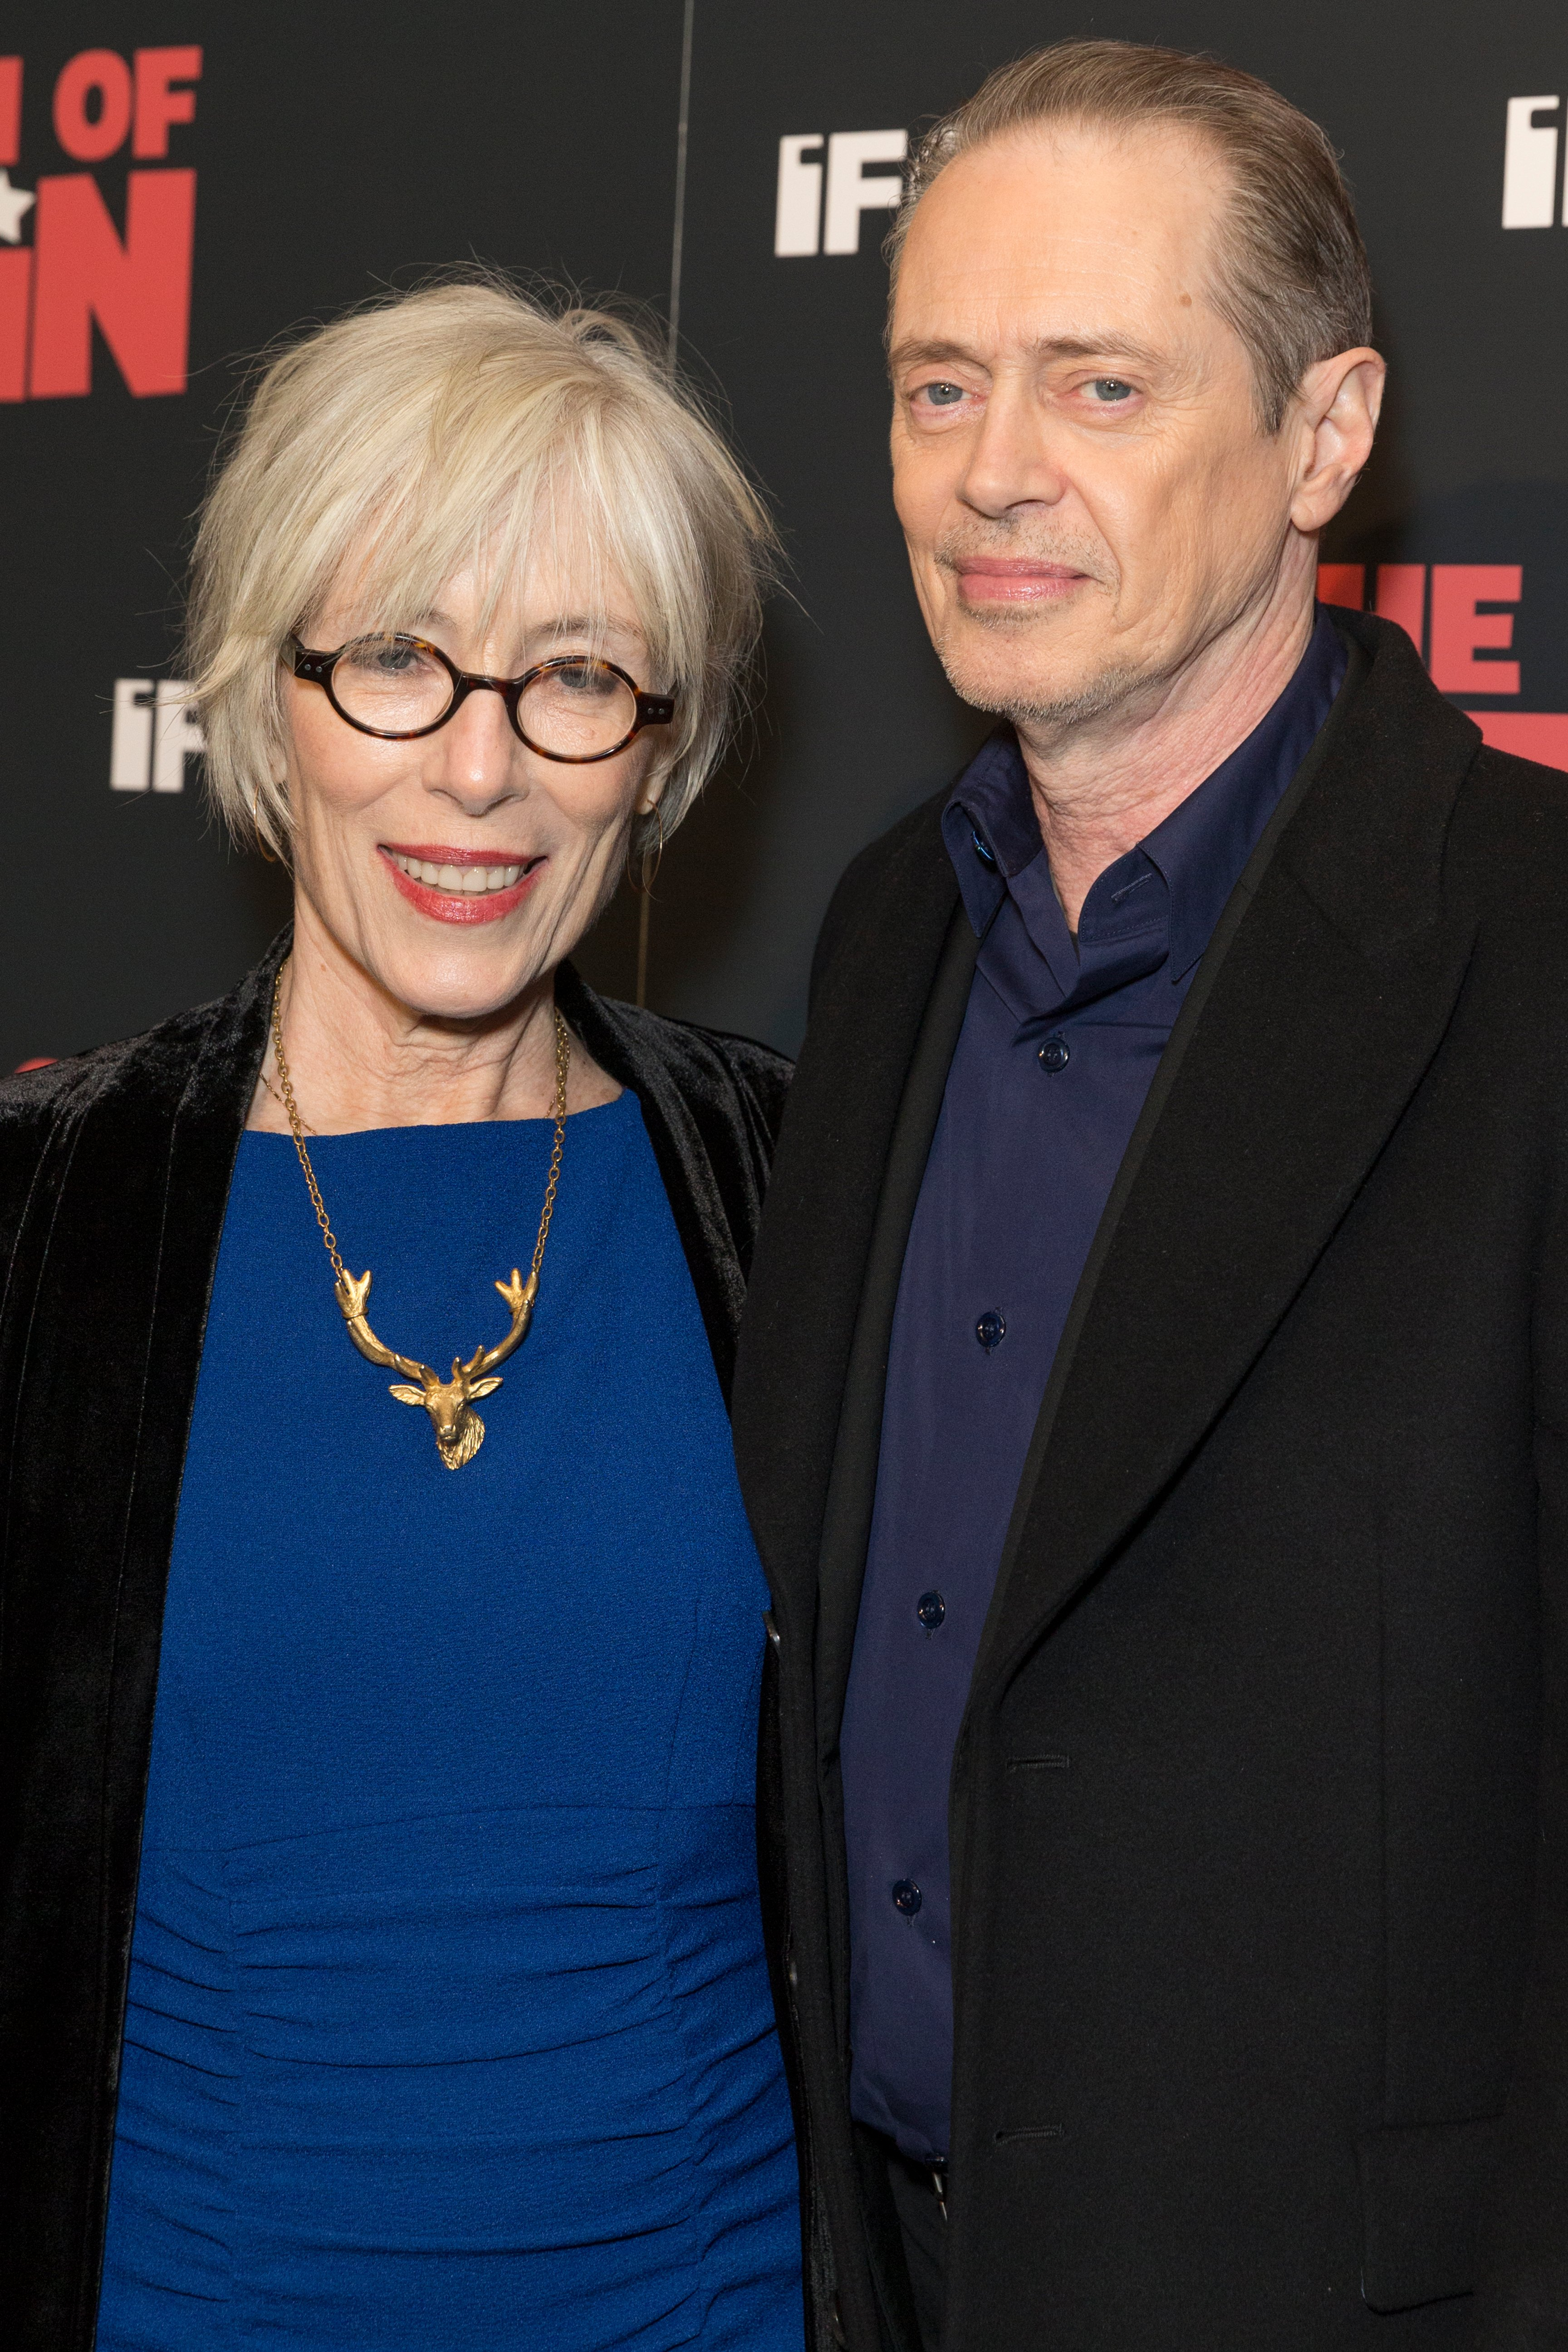 Jo Andres and Steve Buscemi attend New York premiere of IFC Film Death of Stalin at AMC Lincoln Square, March 8, 2018 | Photo: Shutterstock